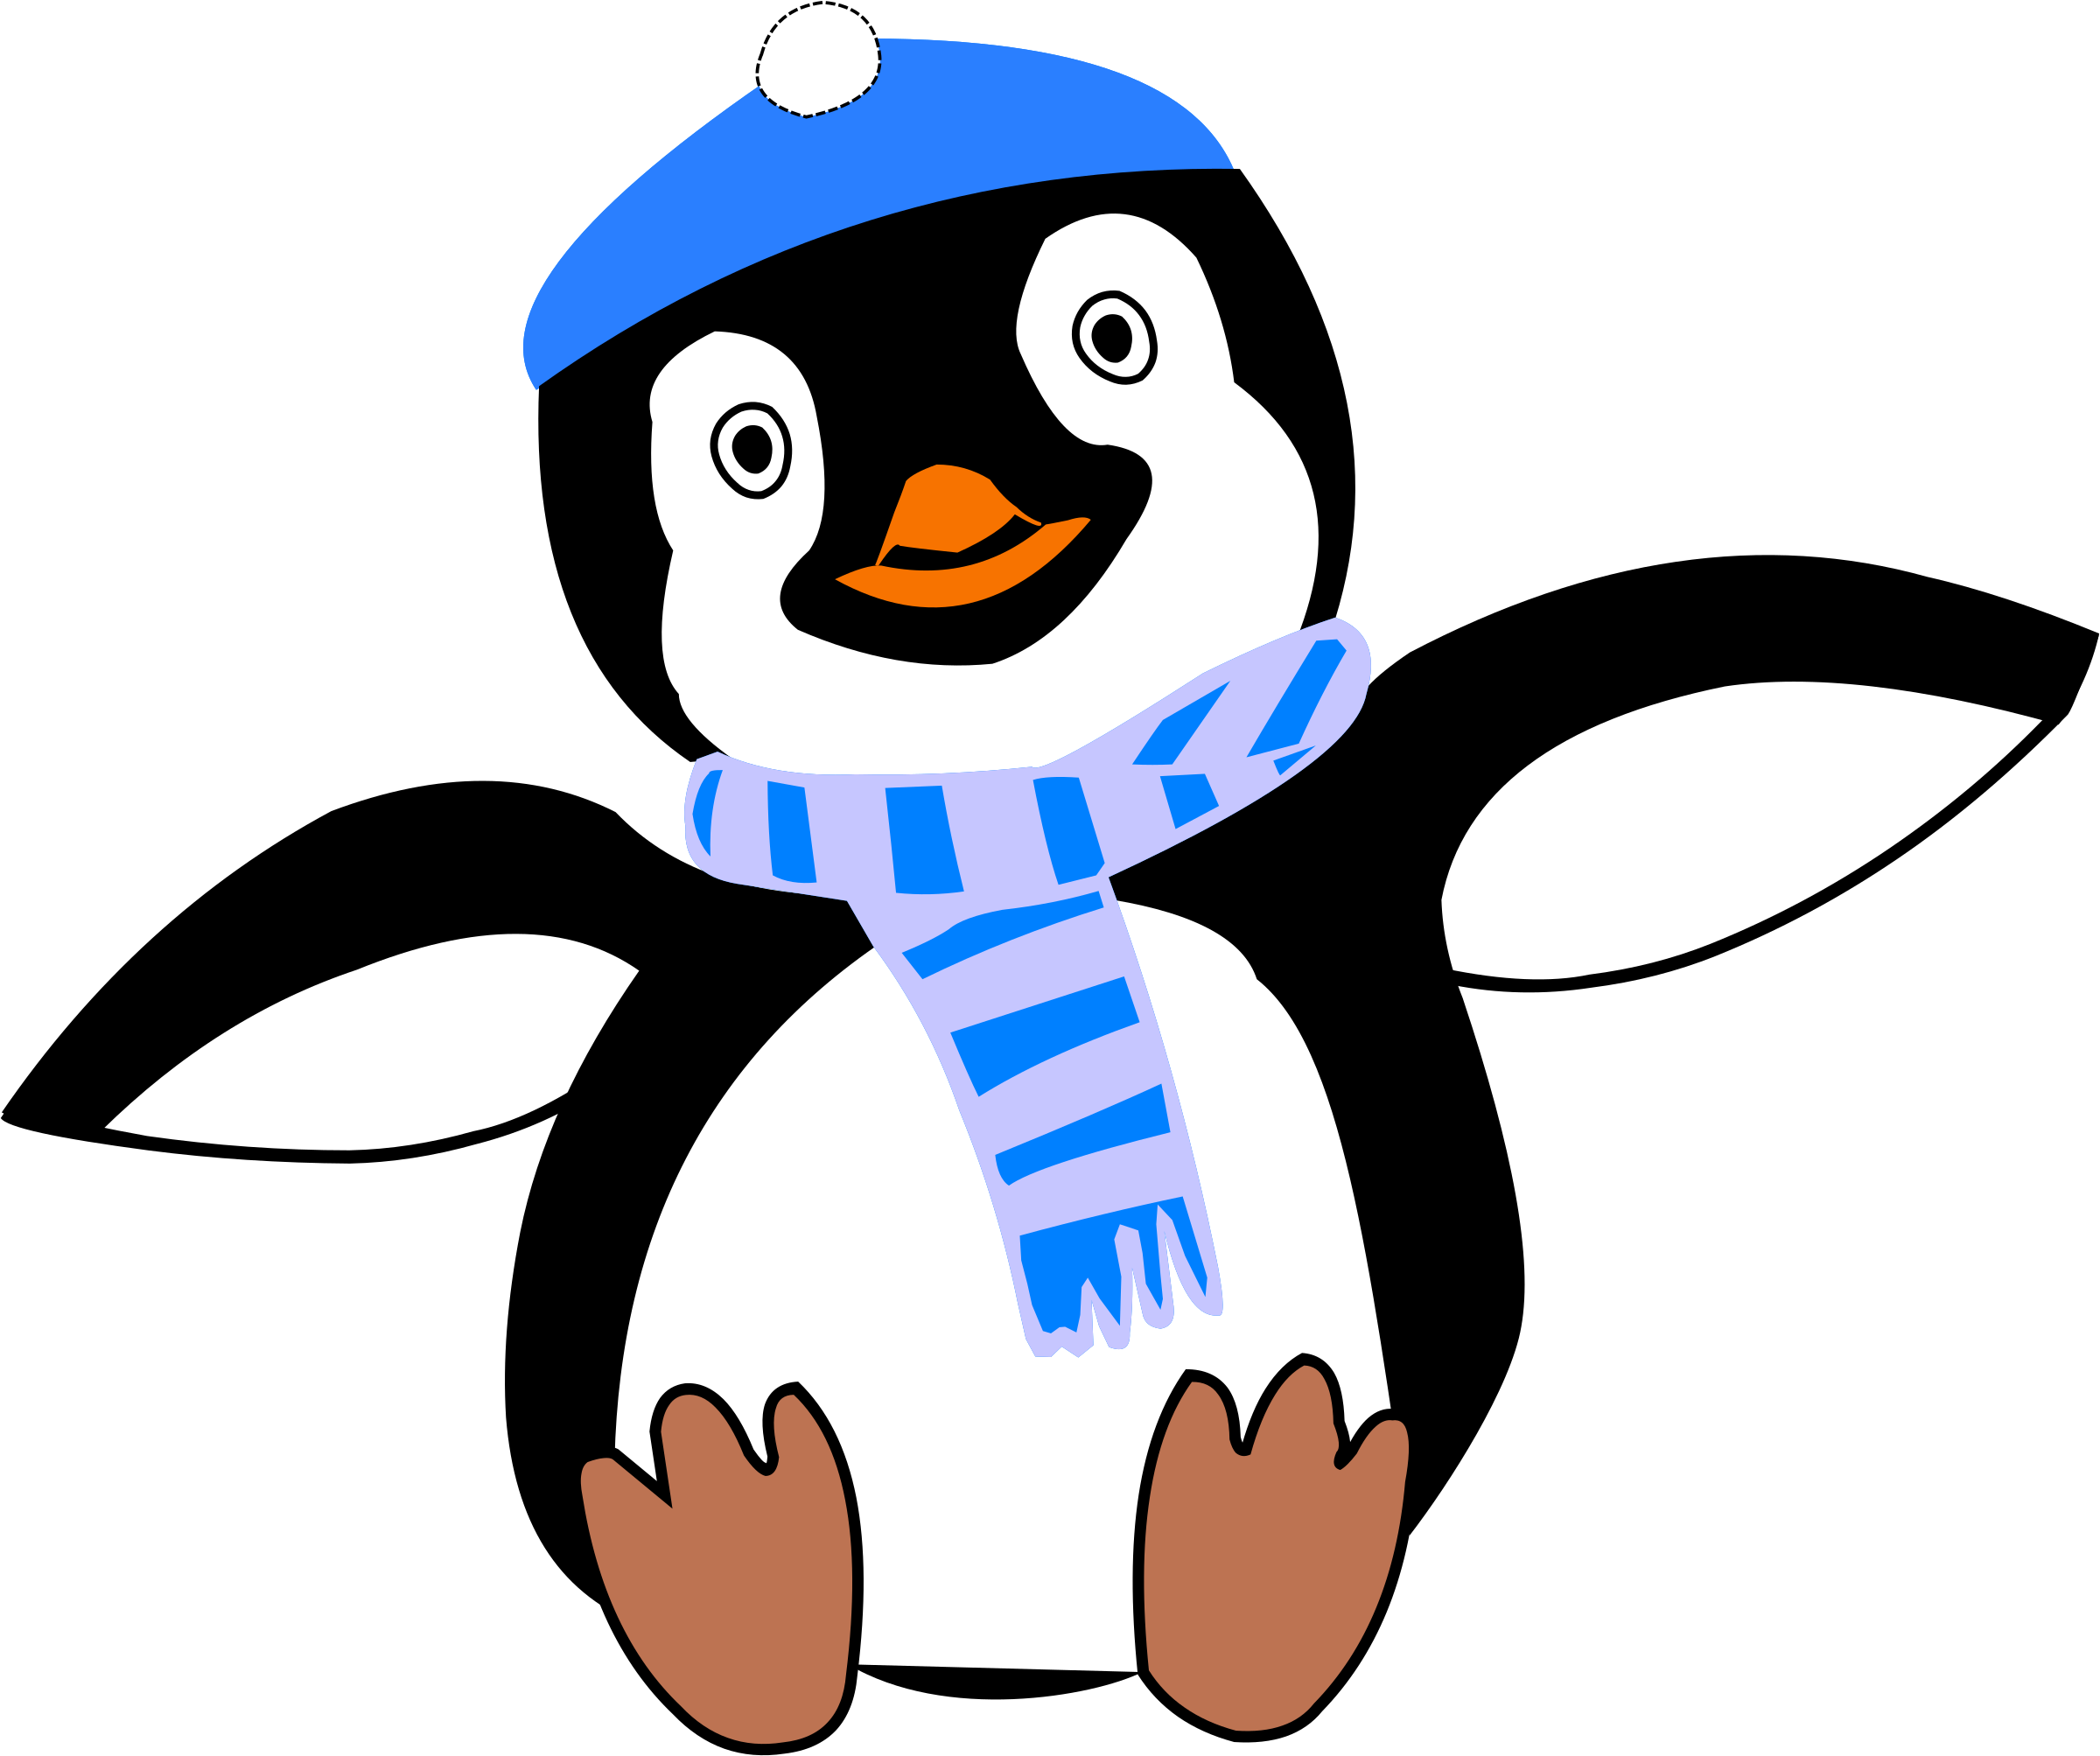 Winter clipart icon. Pinguin im icons png